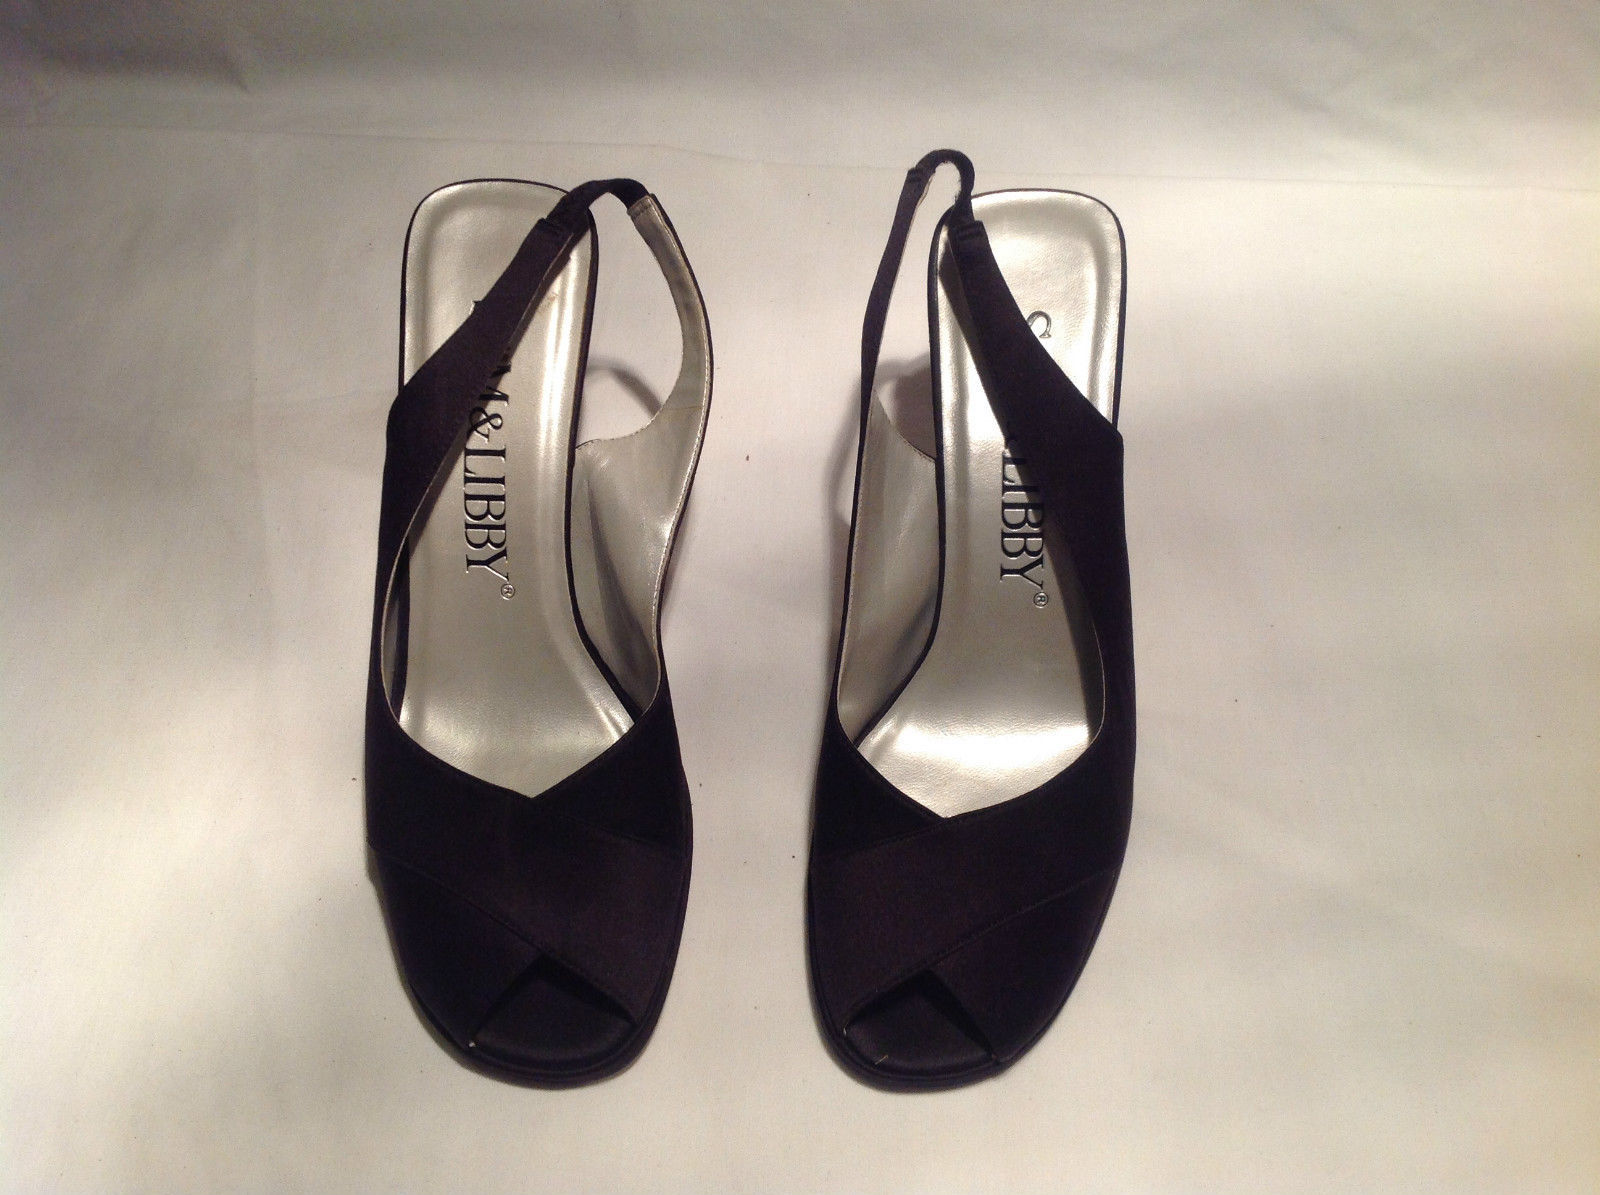 Sam and Libby Black Heels Fabric Upper Leather Sole Size 7 Medium